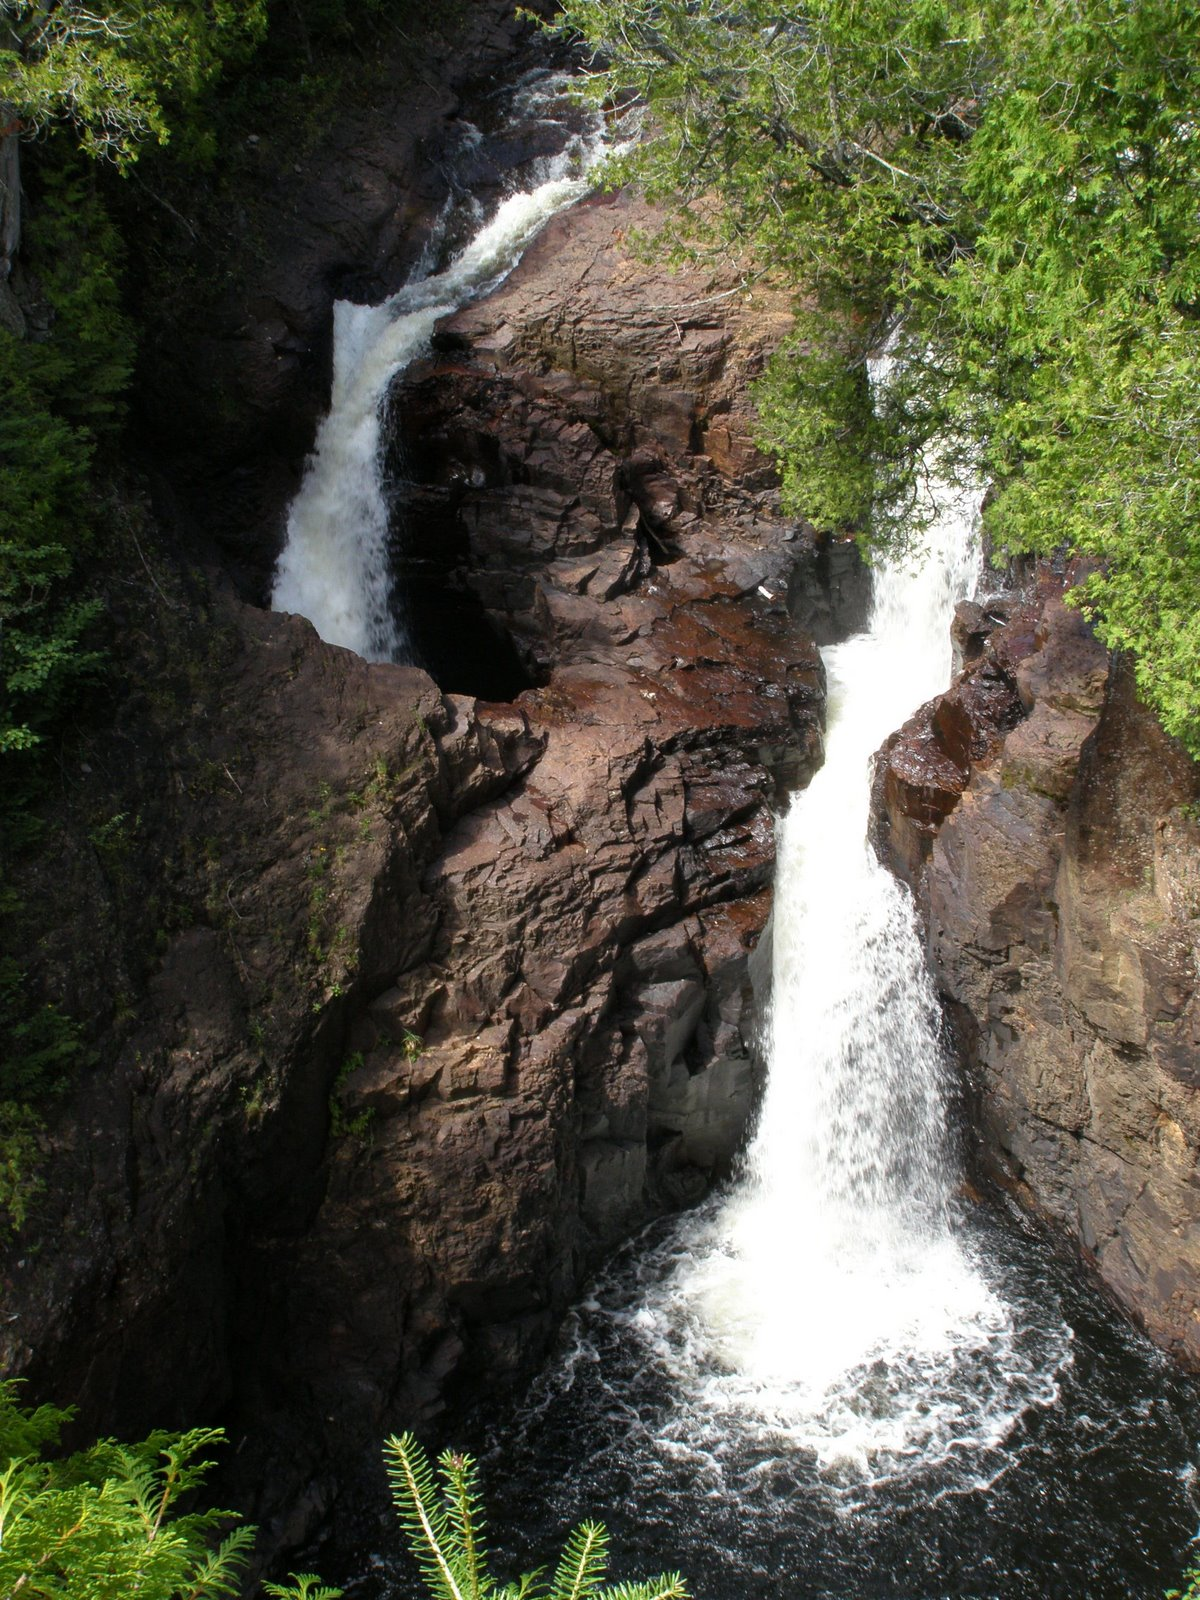 devil's kettle, judge c.r. magney state park